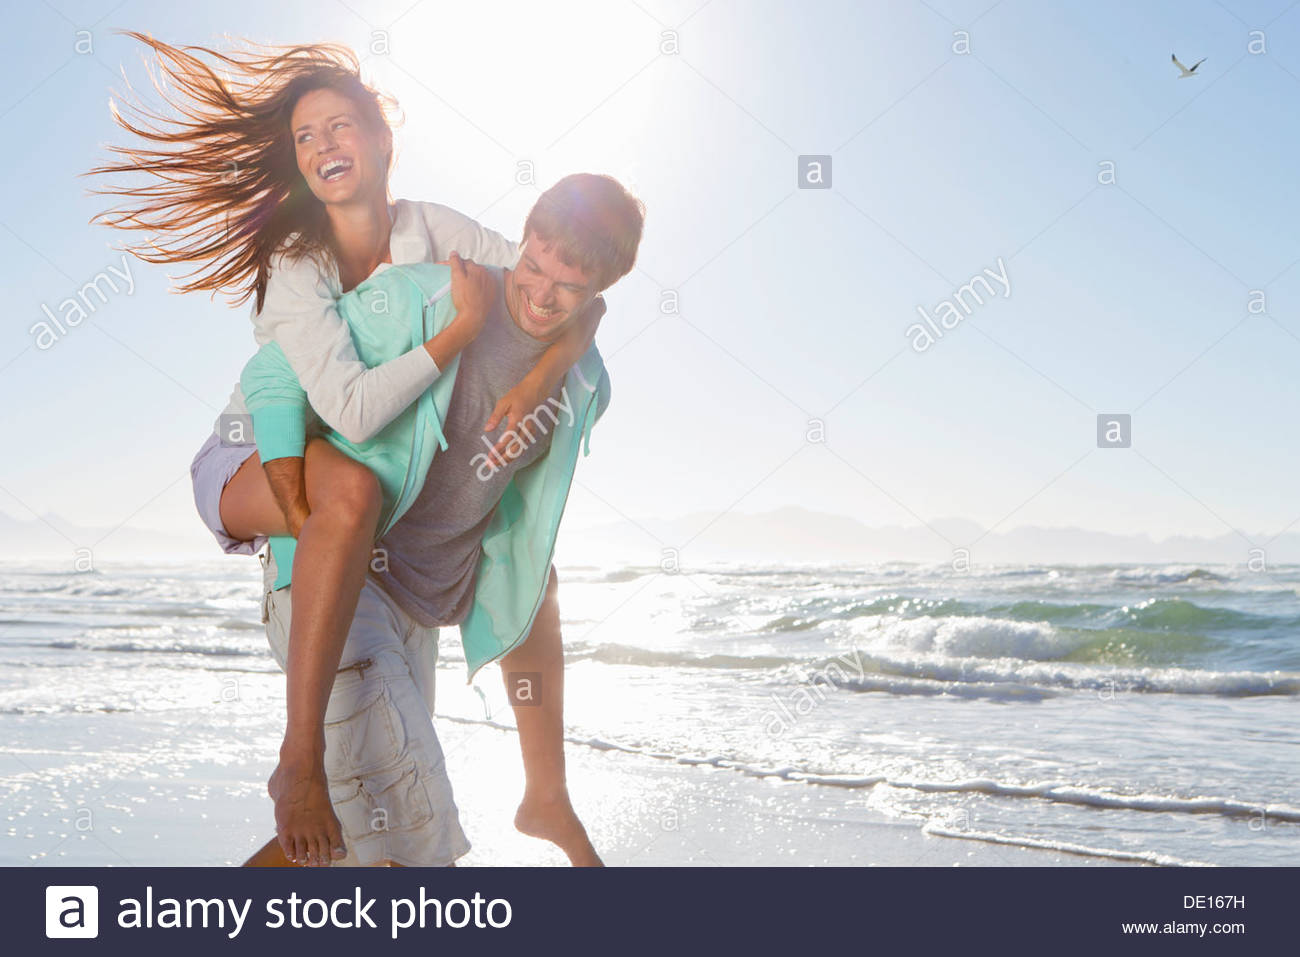 Man piggybacking enthusiastic woman on sunny beach - Stock Image